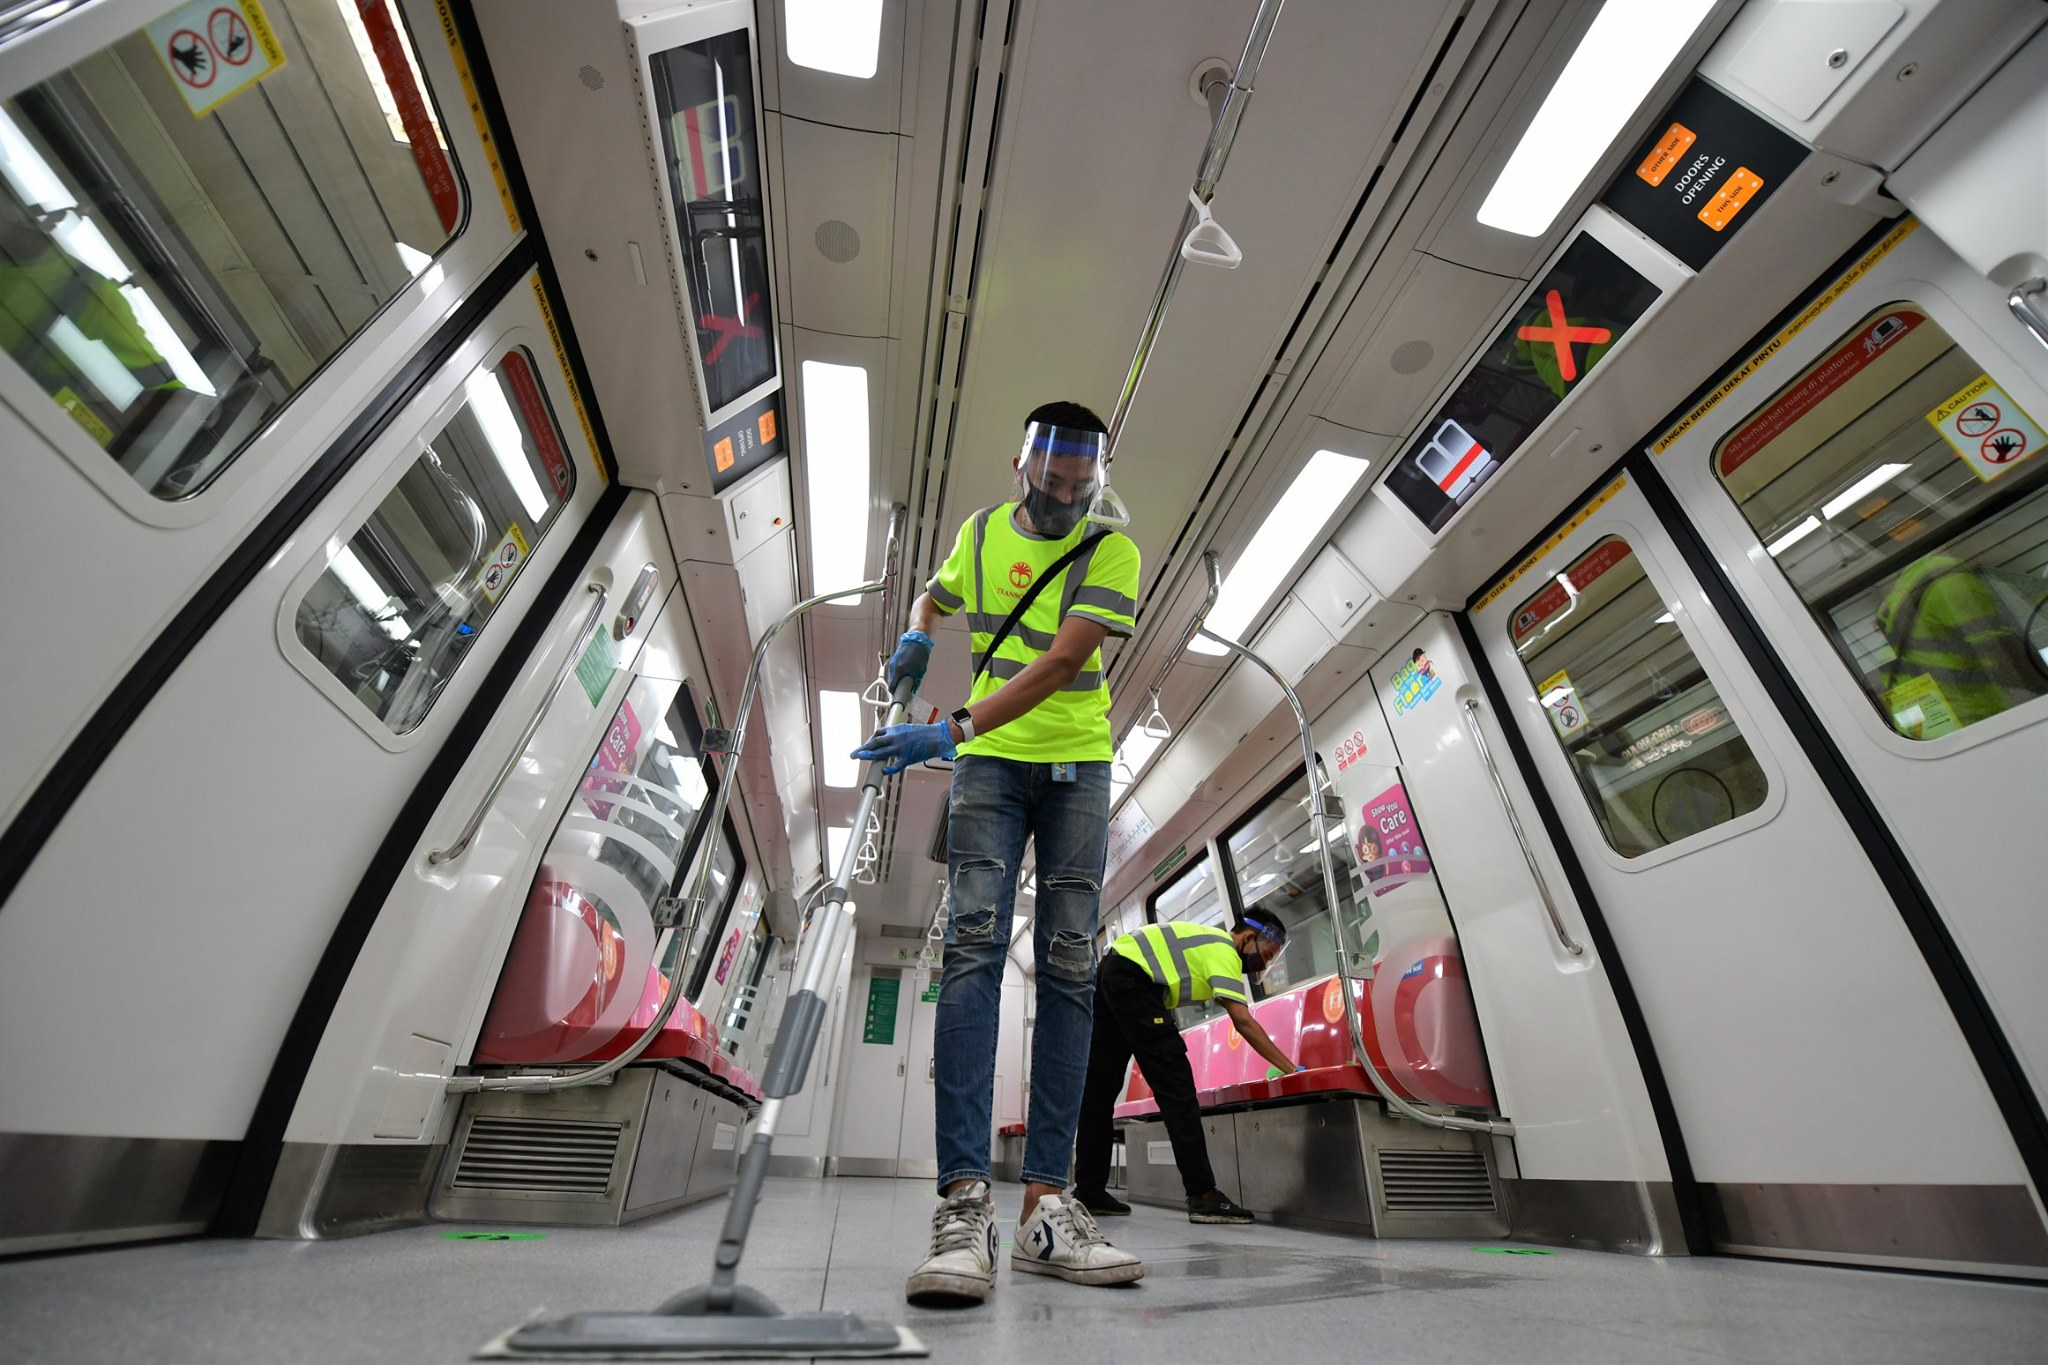 Land Transport Authority said a new self-disinfecting chemical coating, which can last up to six months, is also being applied to high contact points in buses and trains such as the handrails, buttons, grab poles and seats. Photo courtesy: Facebook/Khaw Boon Wan